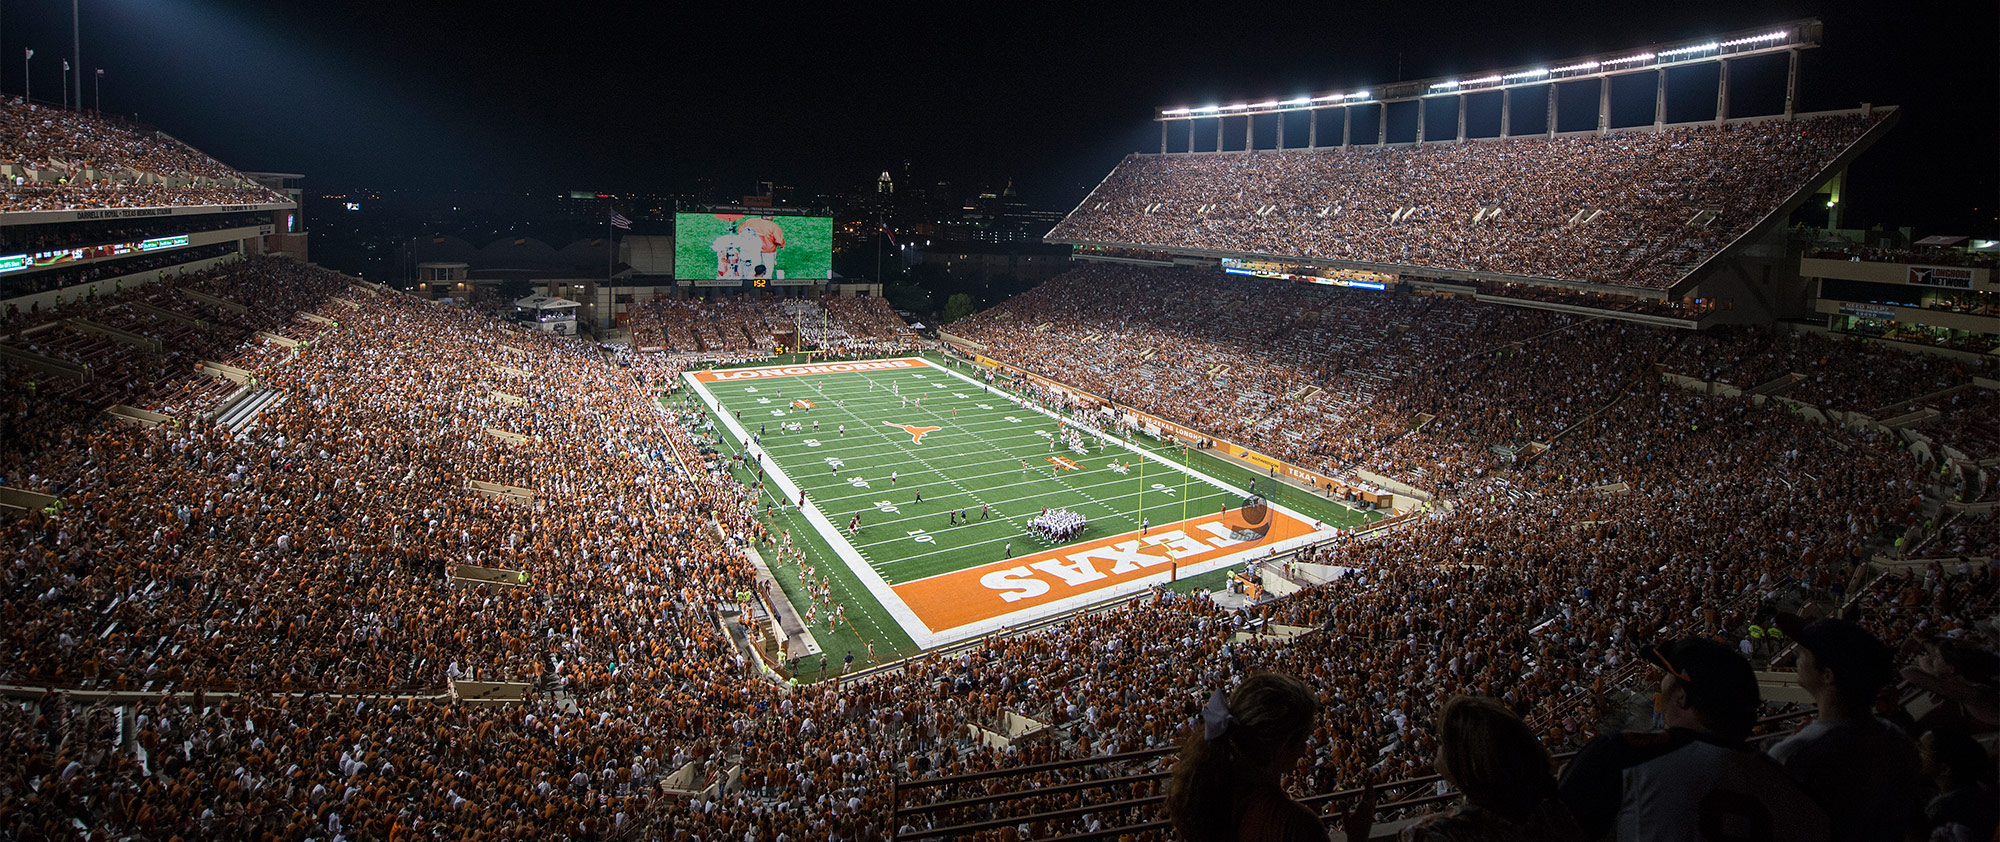 Darrell K Royal-Texas Memorial Stadium at Joe Jamail Field